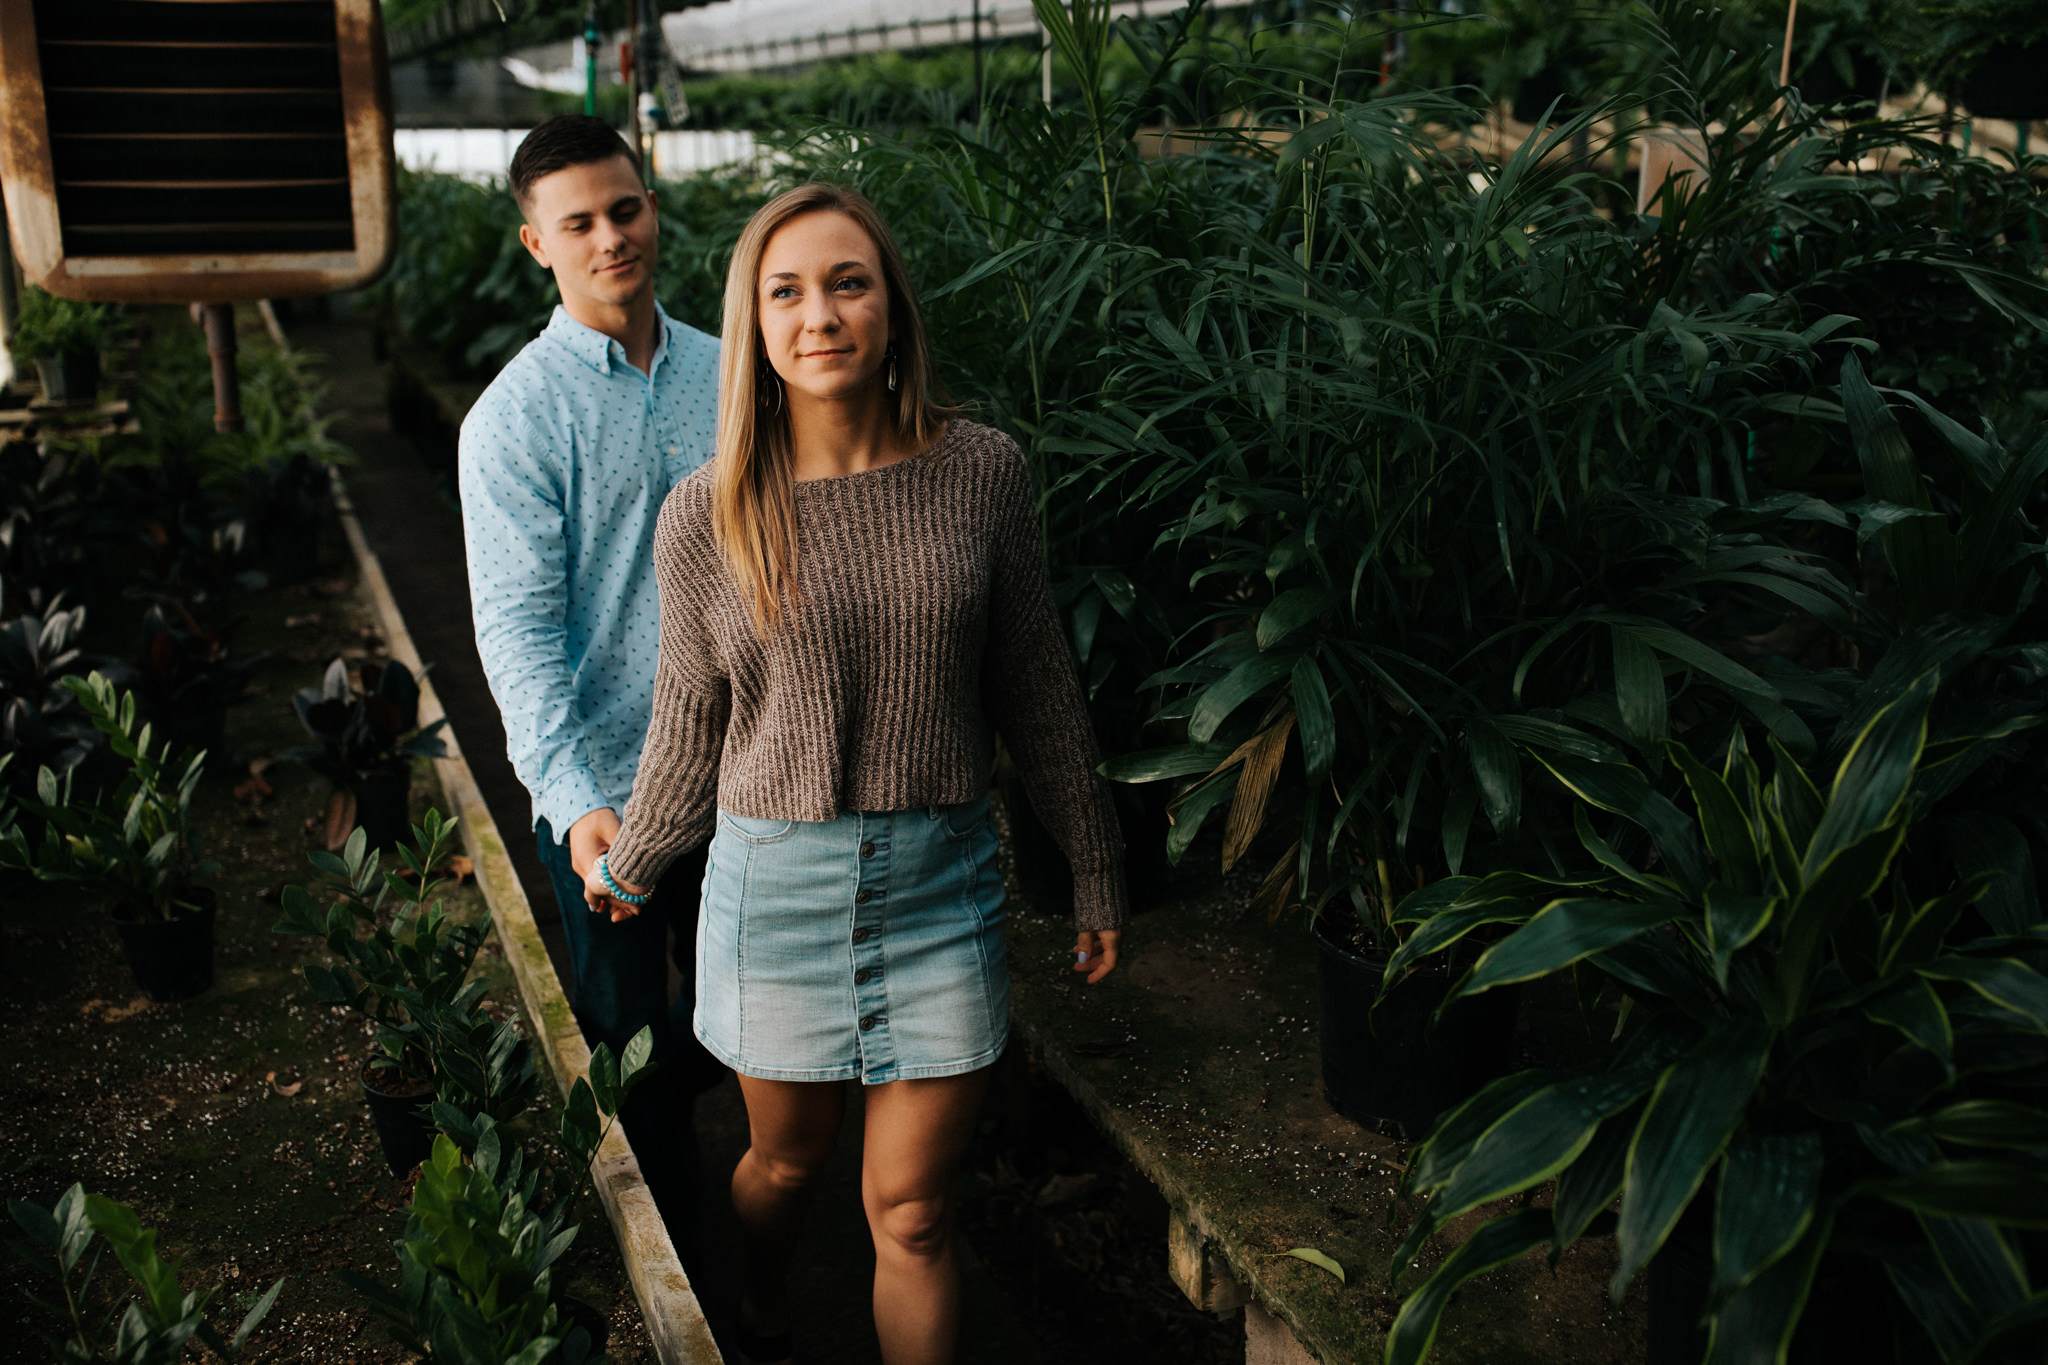 memphis-engagement-photographer-thewarmtharoundyou-greenhouse-engagement-pictures (5 of 118).jpg